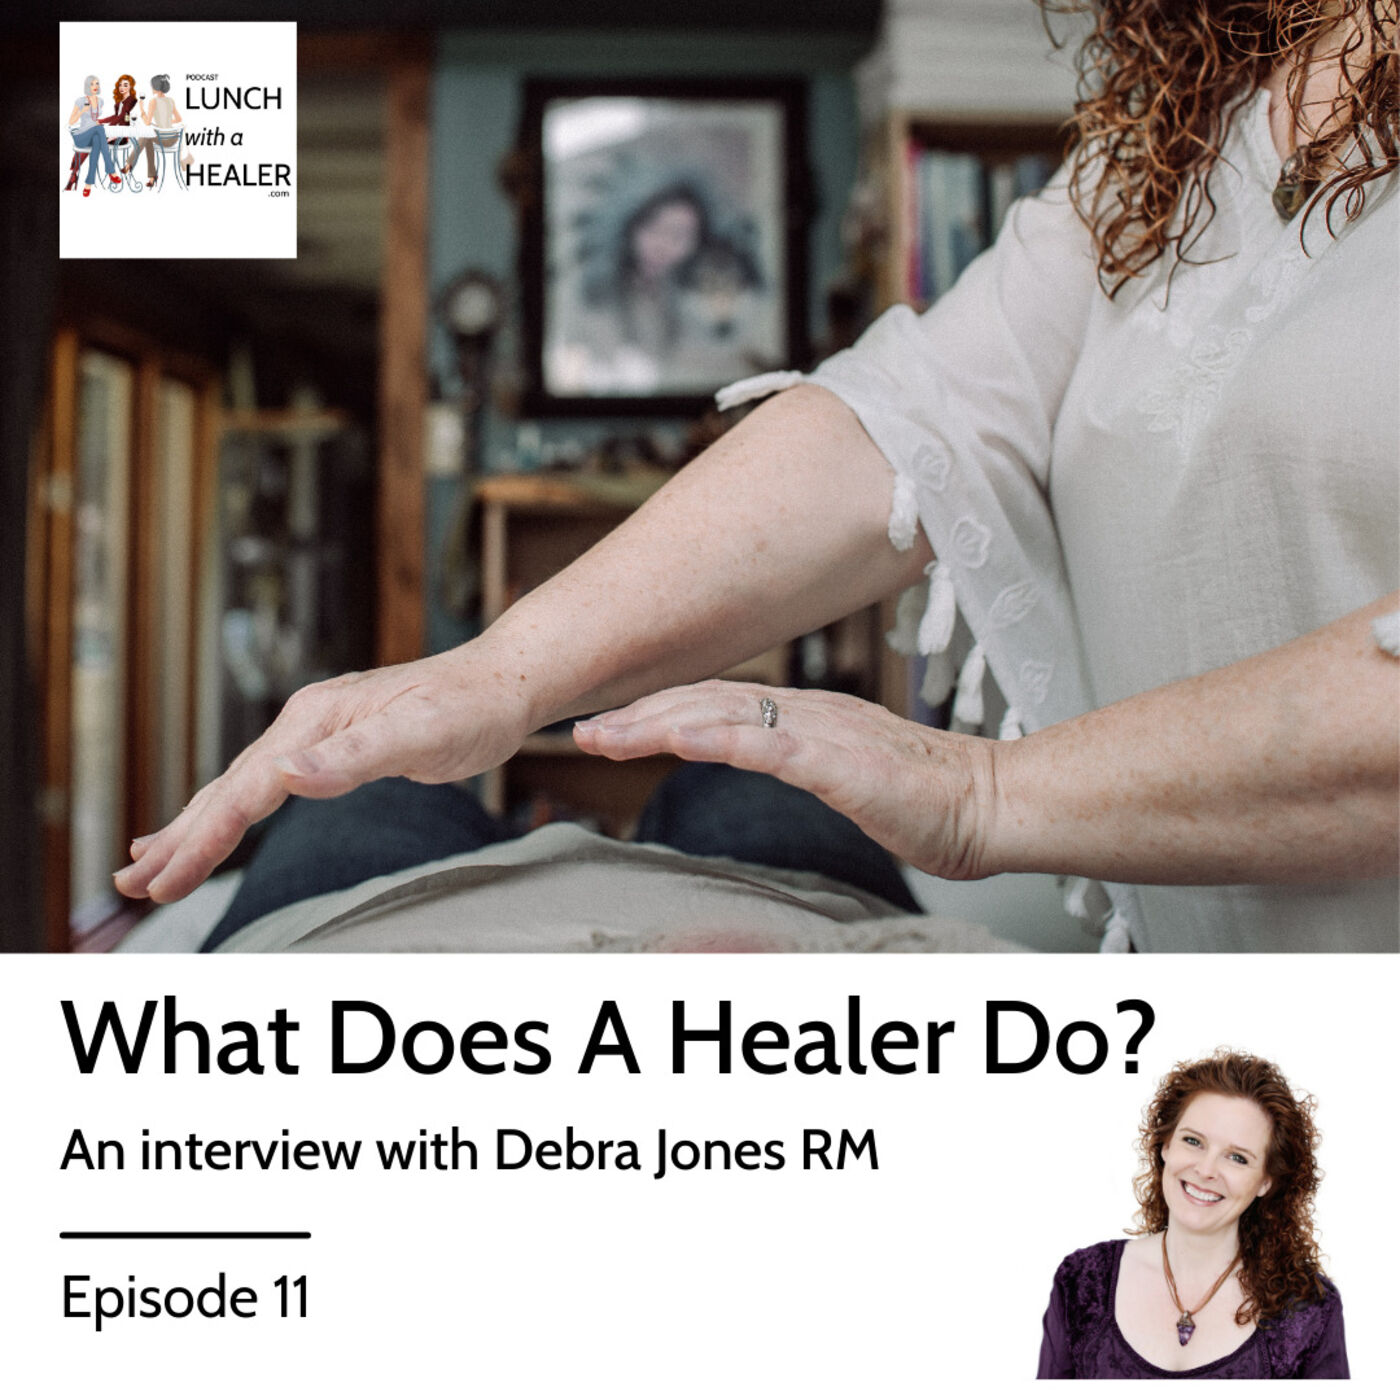 What Does a Healer Do?